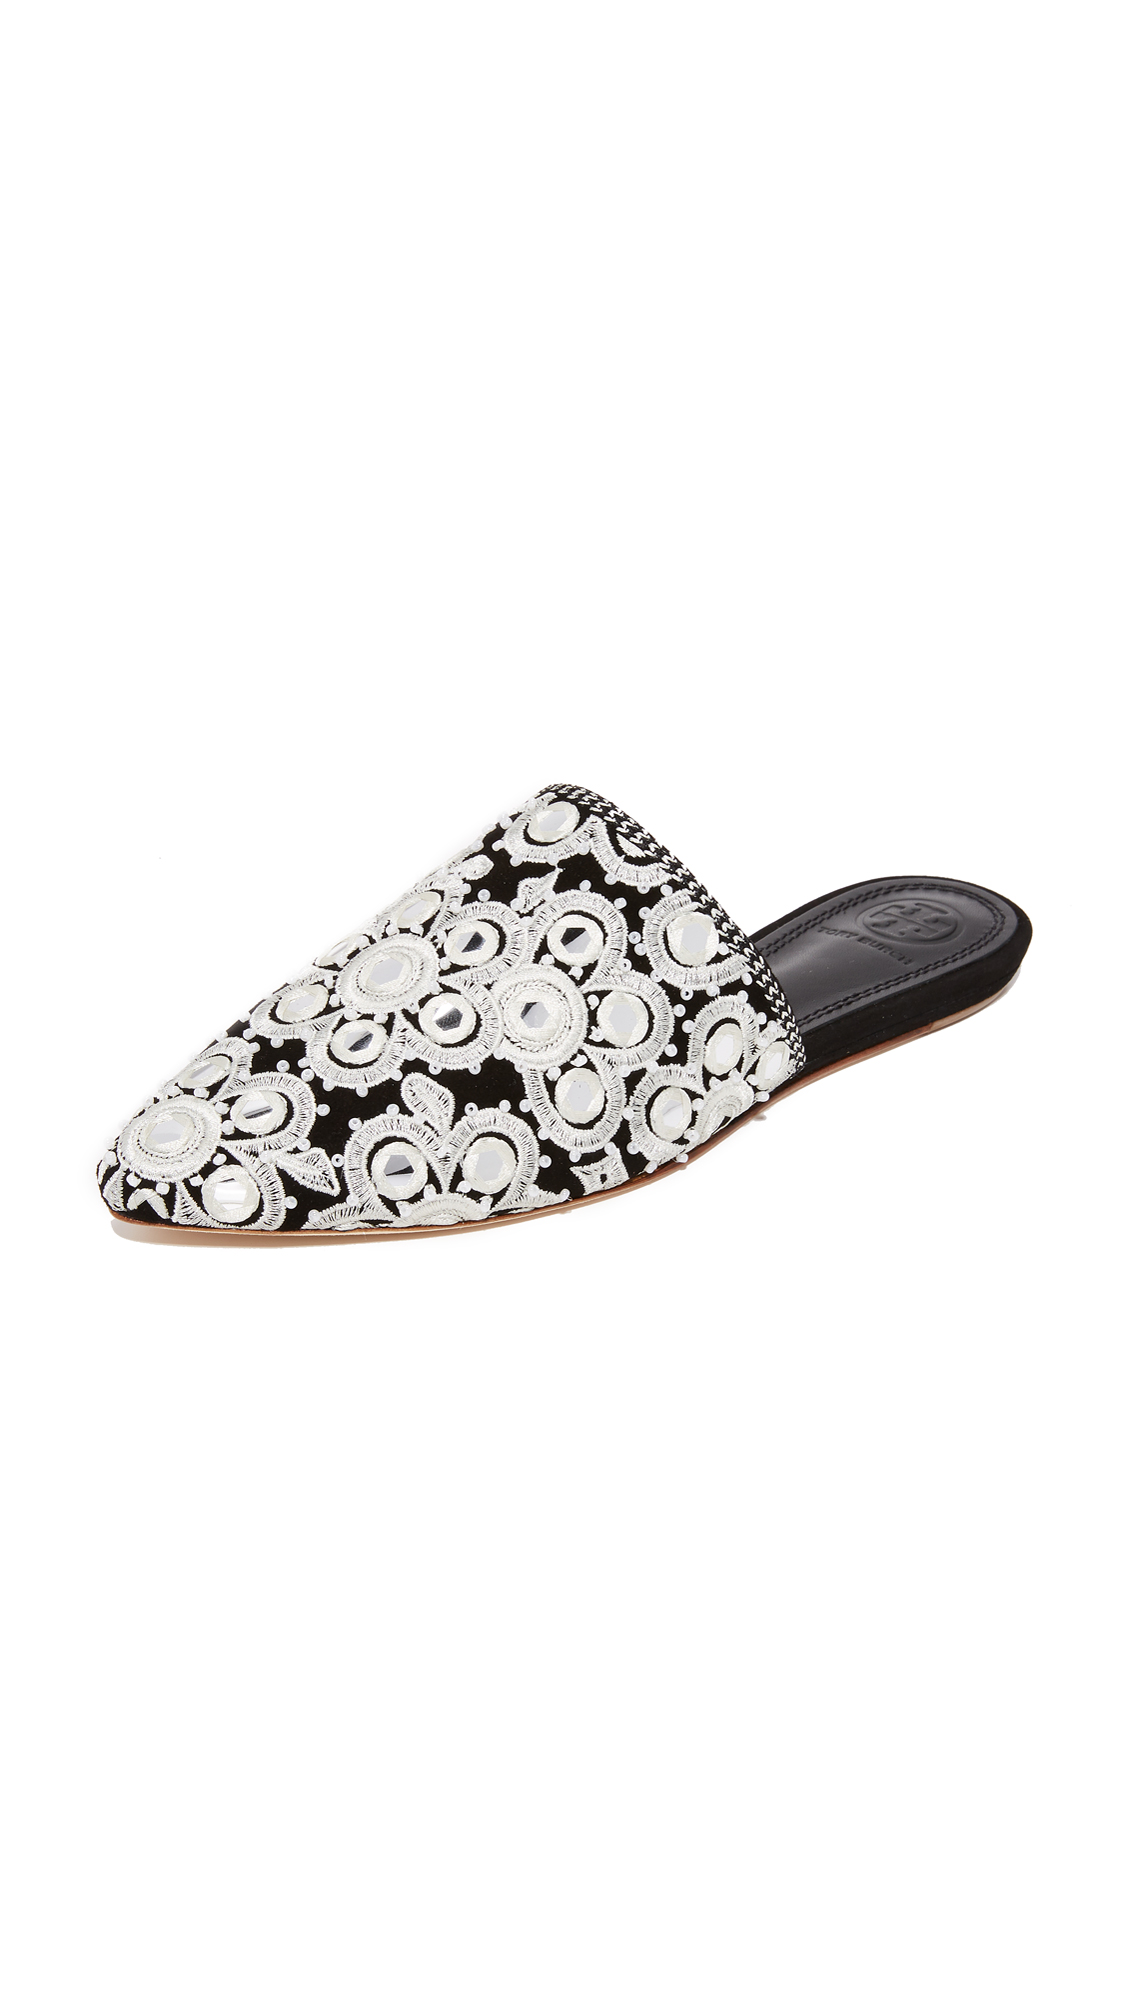 Tory Burch Elora Slides - Black/Multi